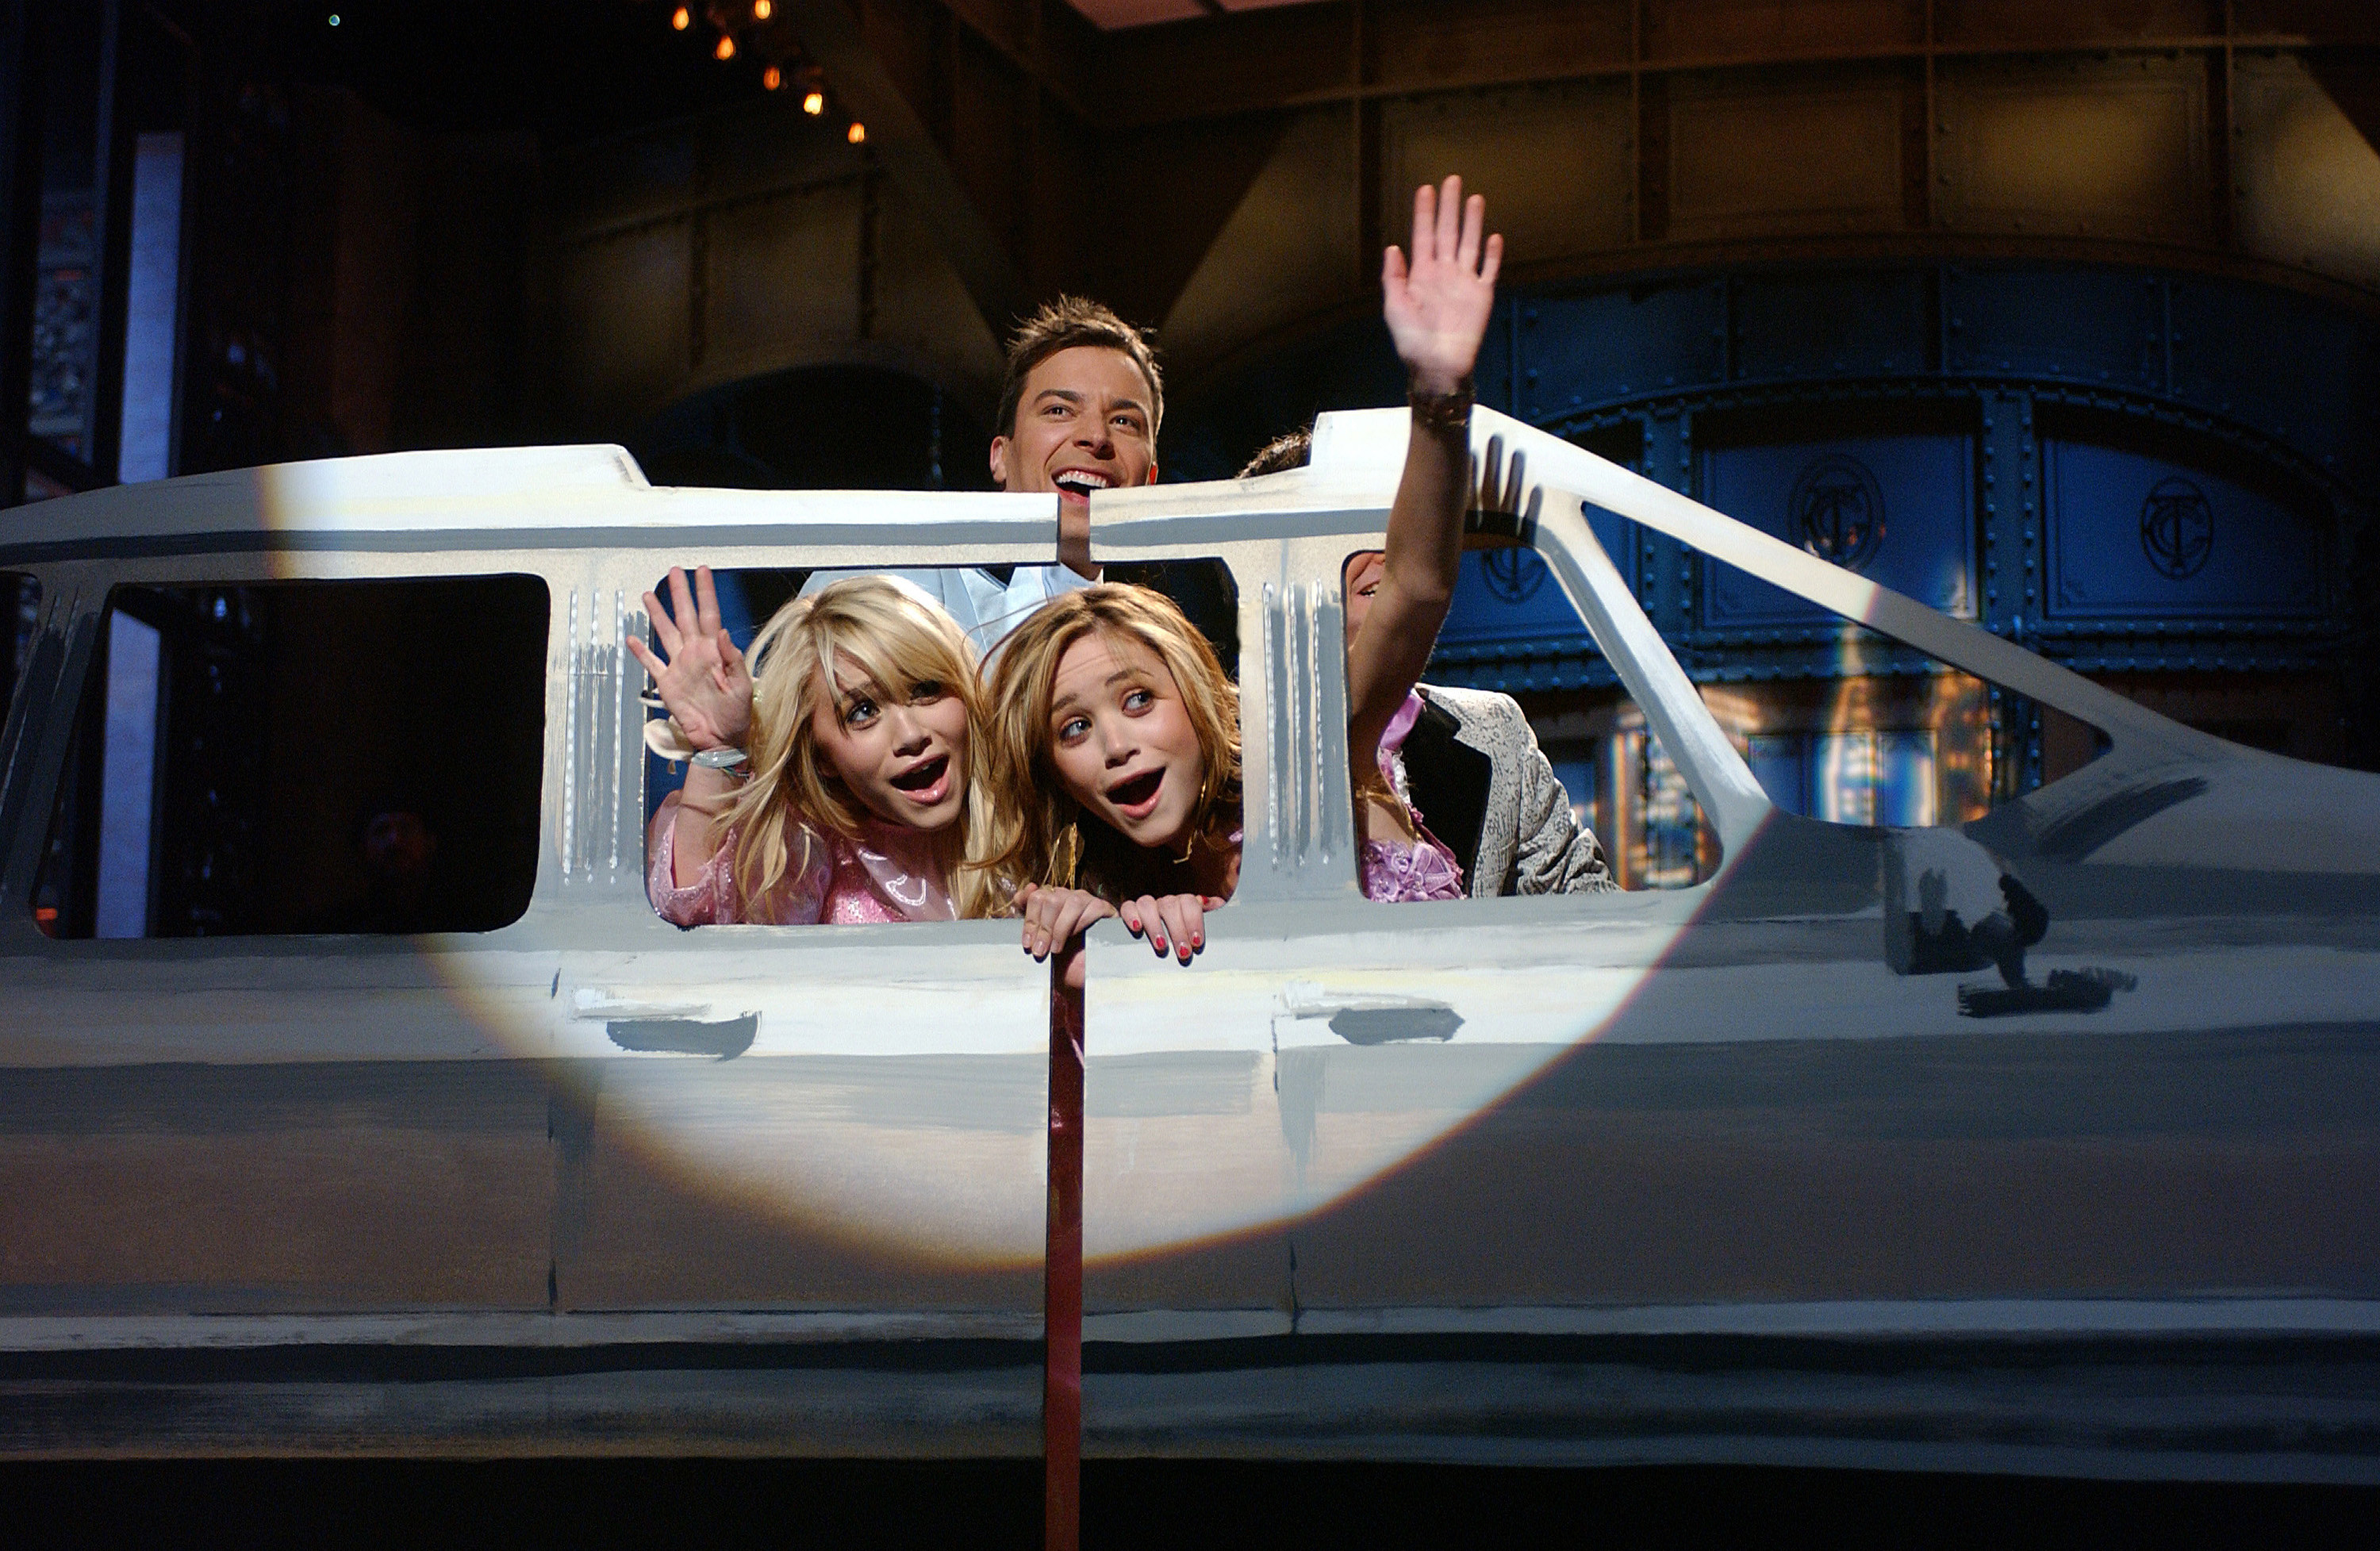 Mary-Kate and Ashley riding in a fake limo with Jimmy Fallon.